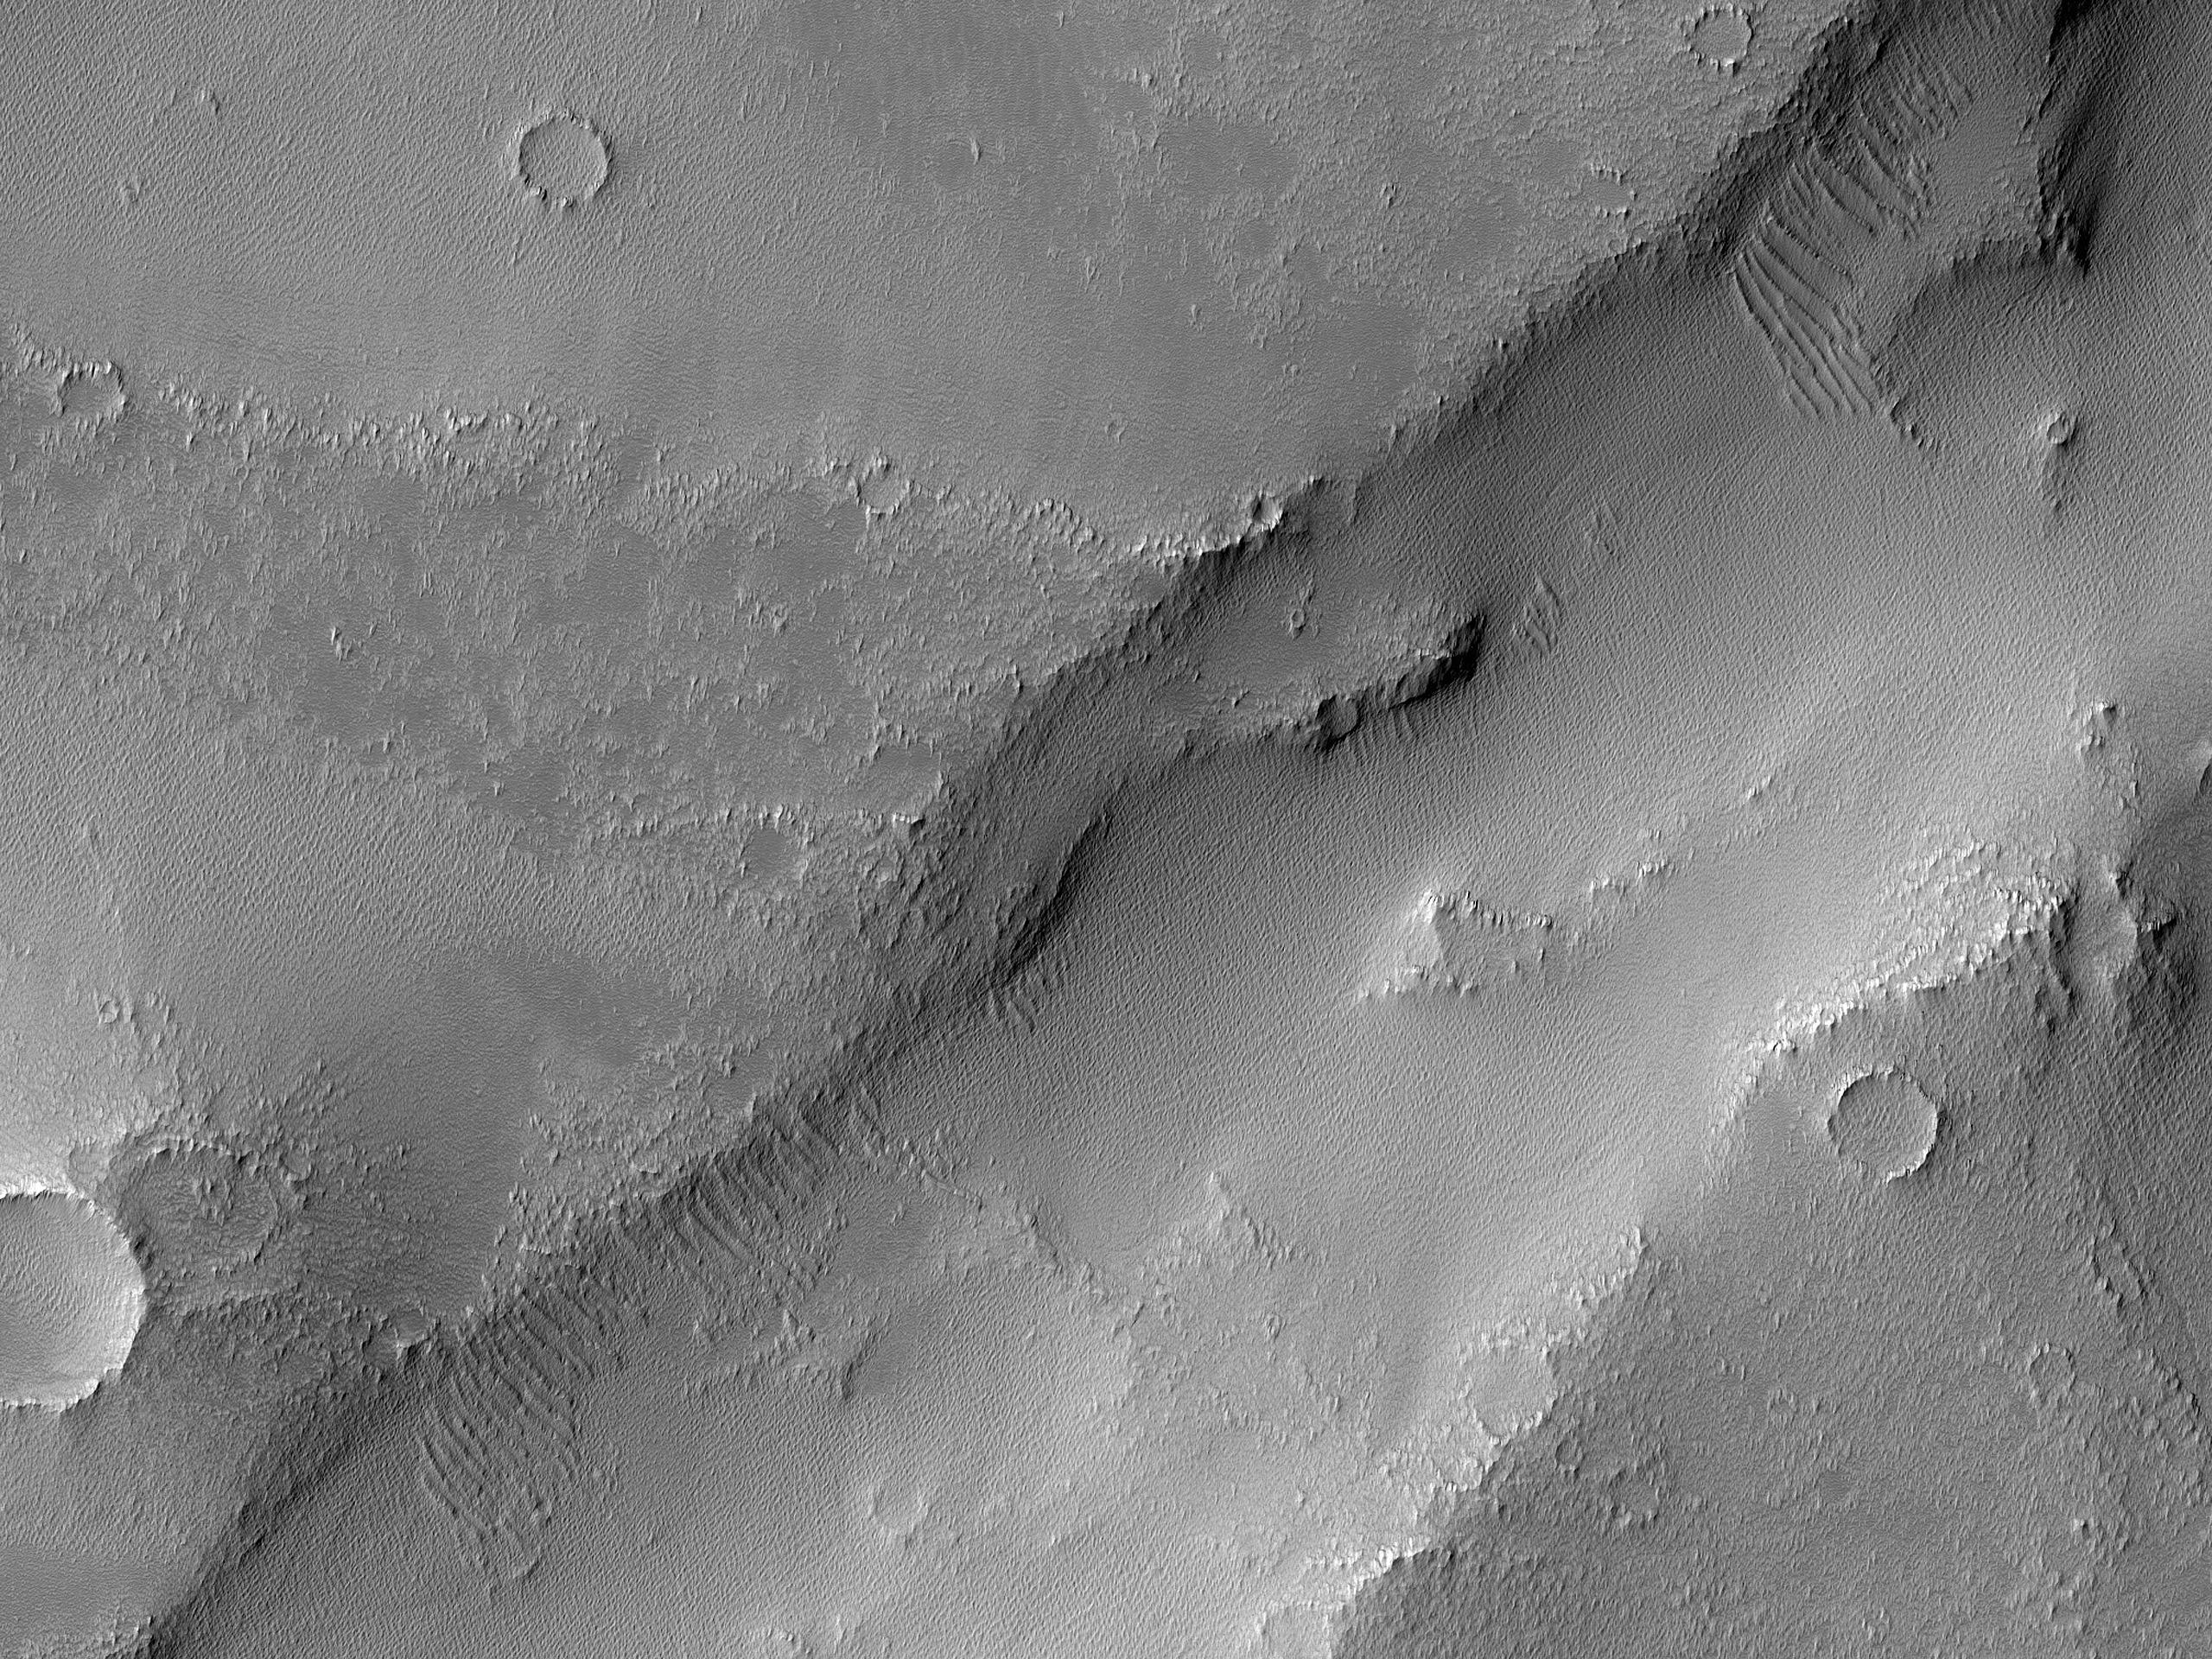 Lava Flow Moving into Trough in Claritas Fossae Region